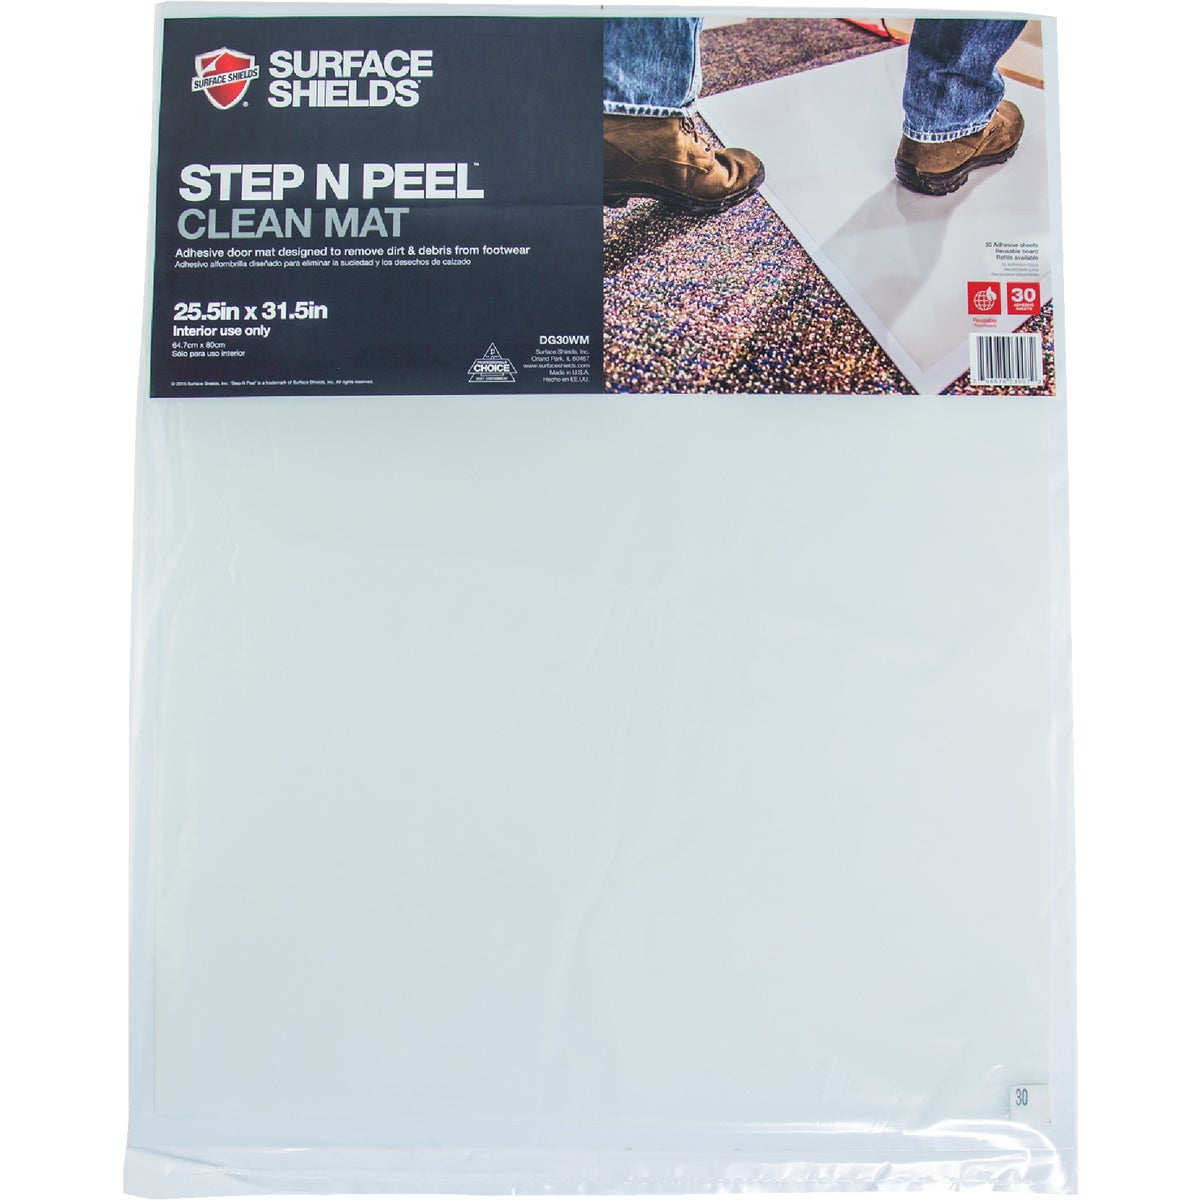 STEP N PEEL MAT - DG30WM by Surface Shields Inc